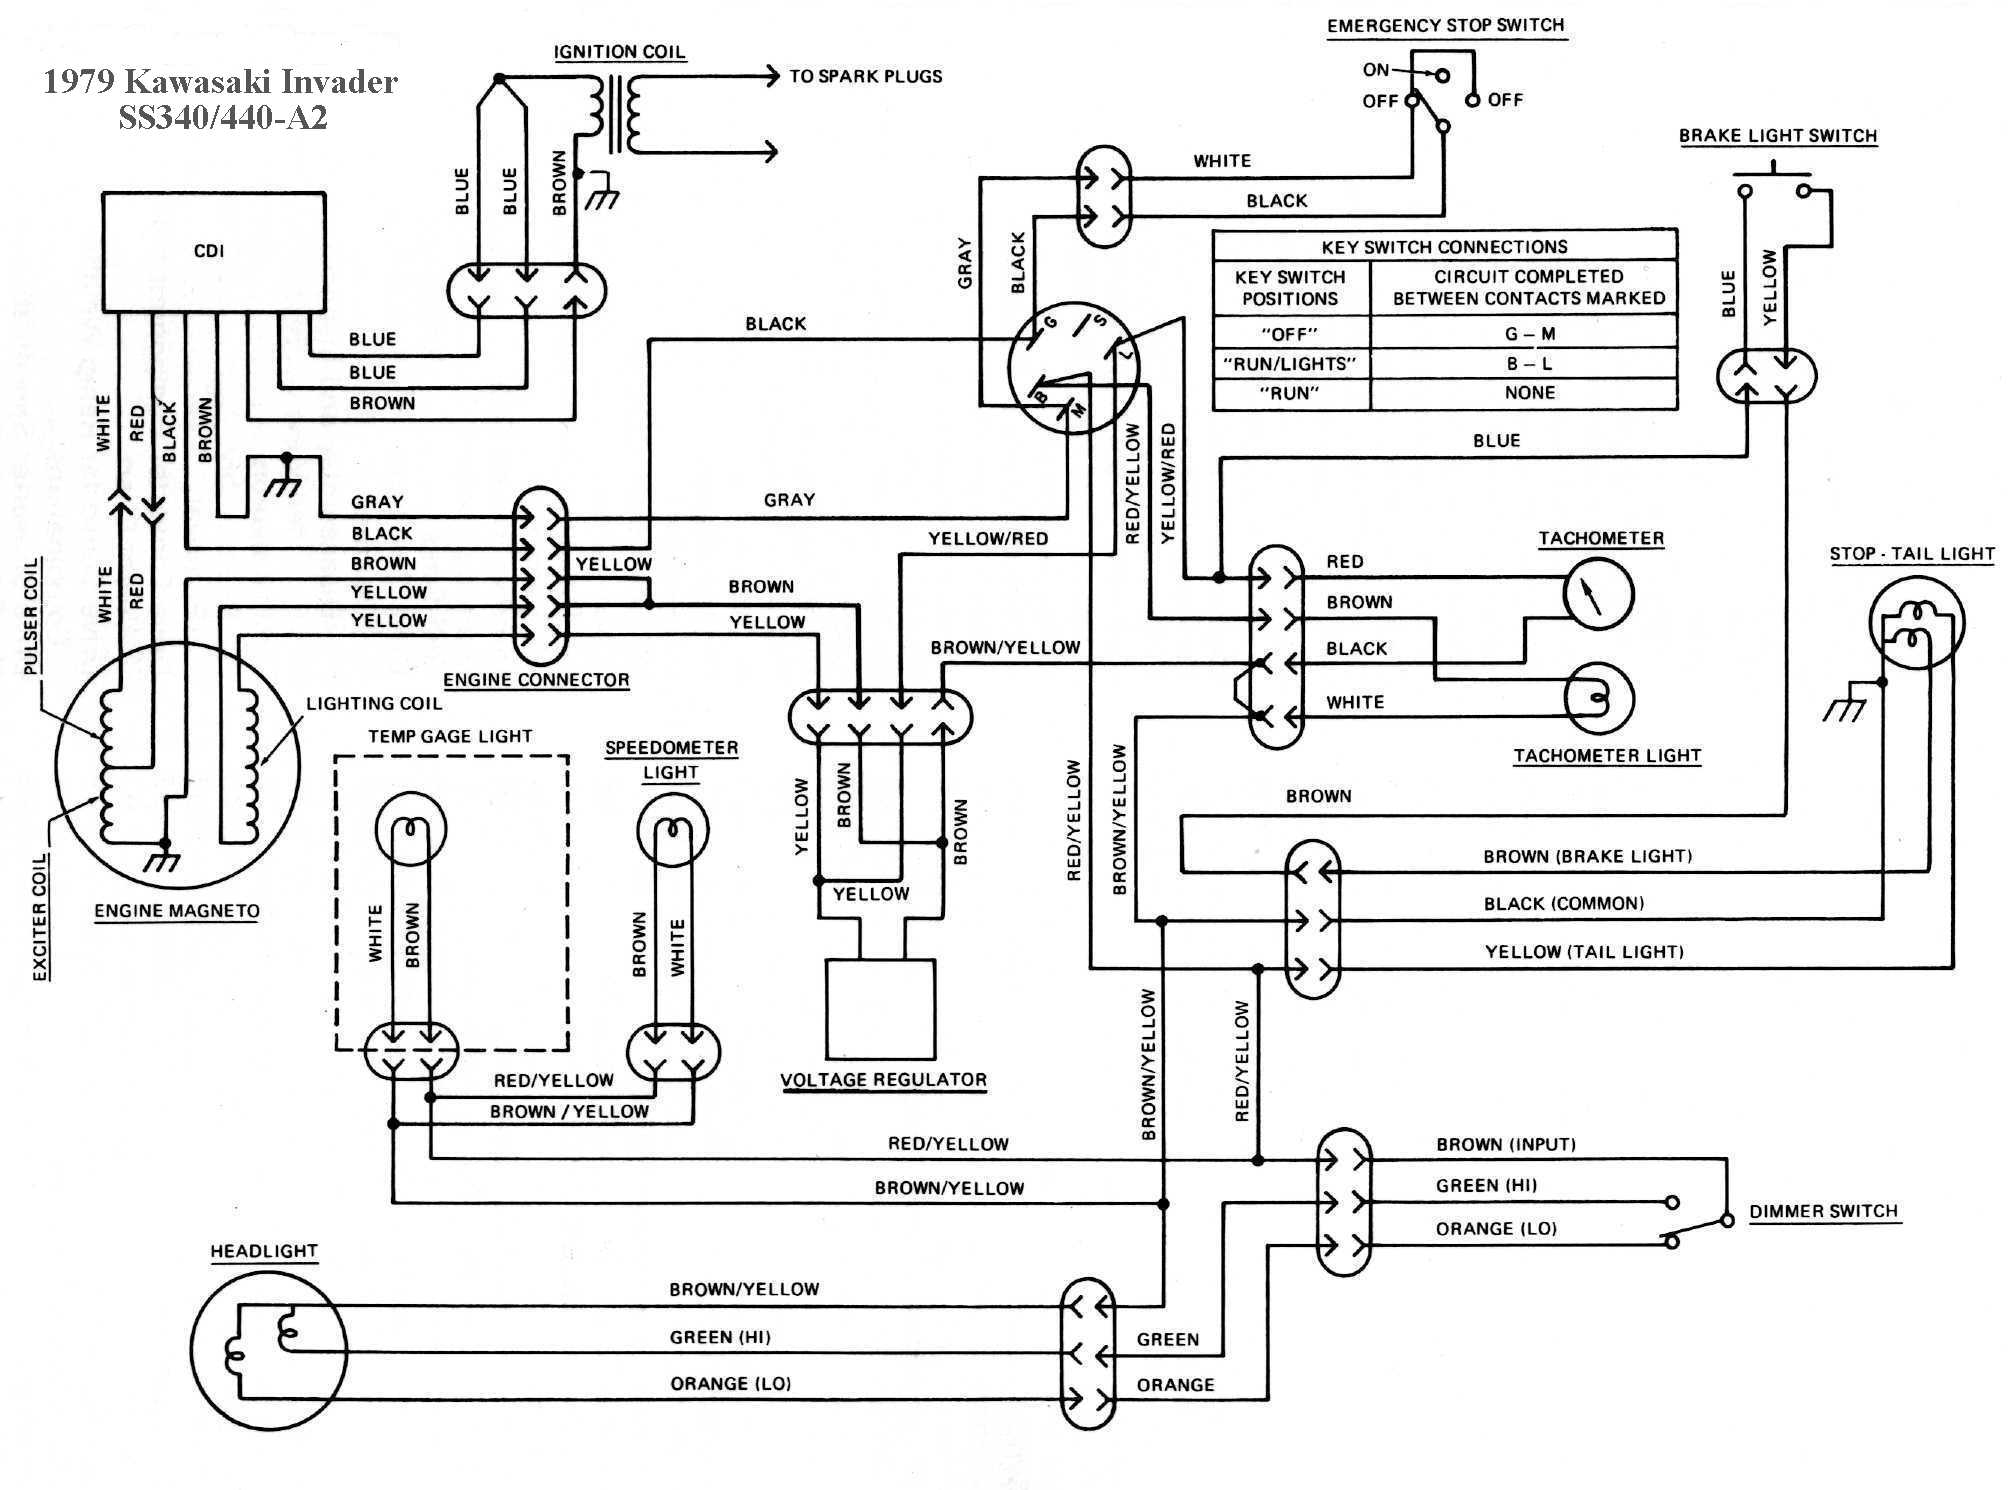 ss340a2 kawasaki invader snowmobile wiring diagrams 1980 kawasaki 440 ltd wiring diagram at bakdesigns.co